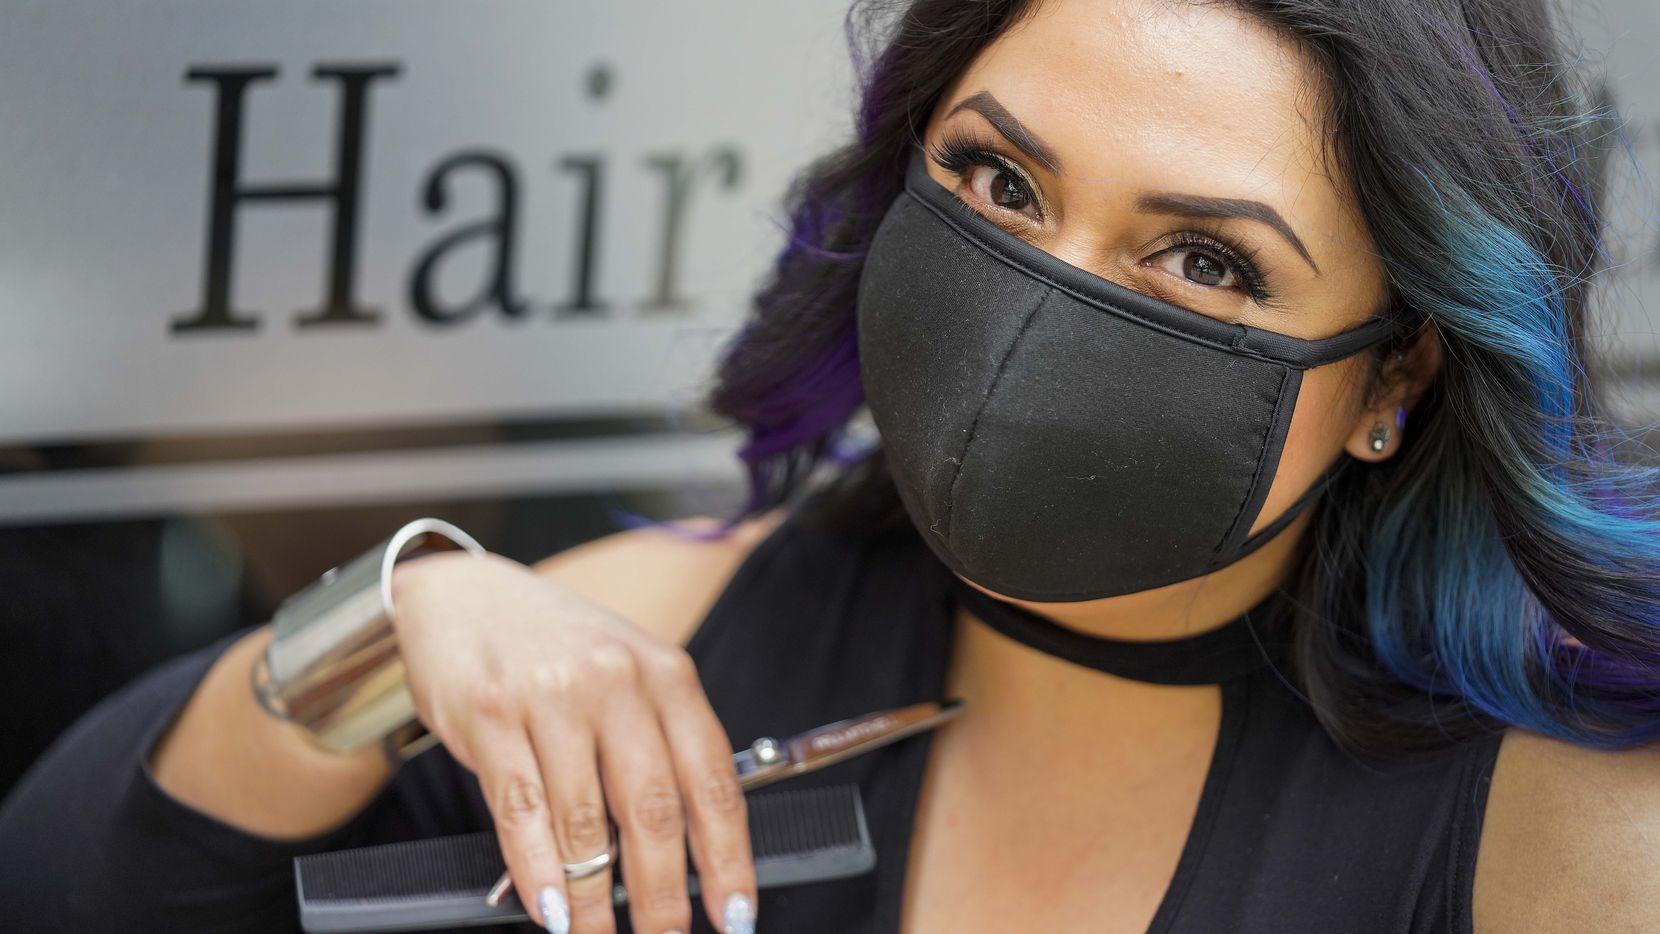 Hairdresser Lindsay Stone returned to work on May 8 in Richardson. She said she thinks one of the reasons why Dallas has been talking about haircuts so much during the pandemic is because of the feeling you have after getting one.